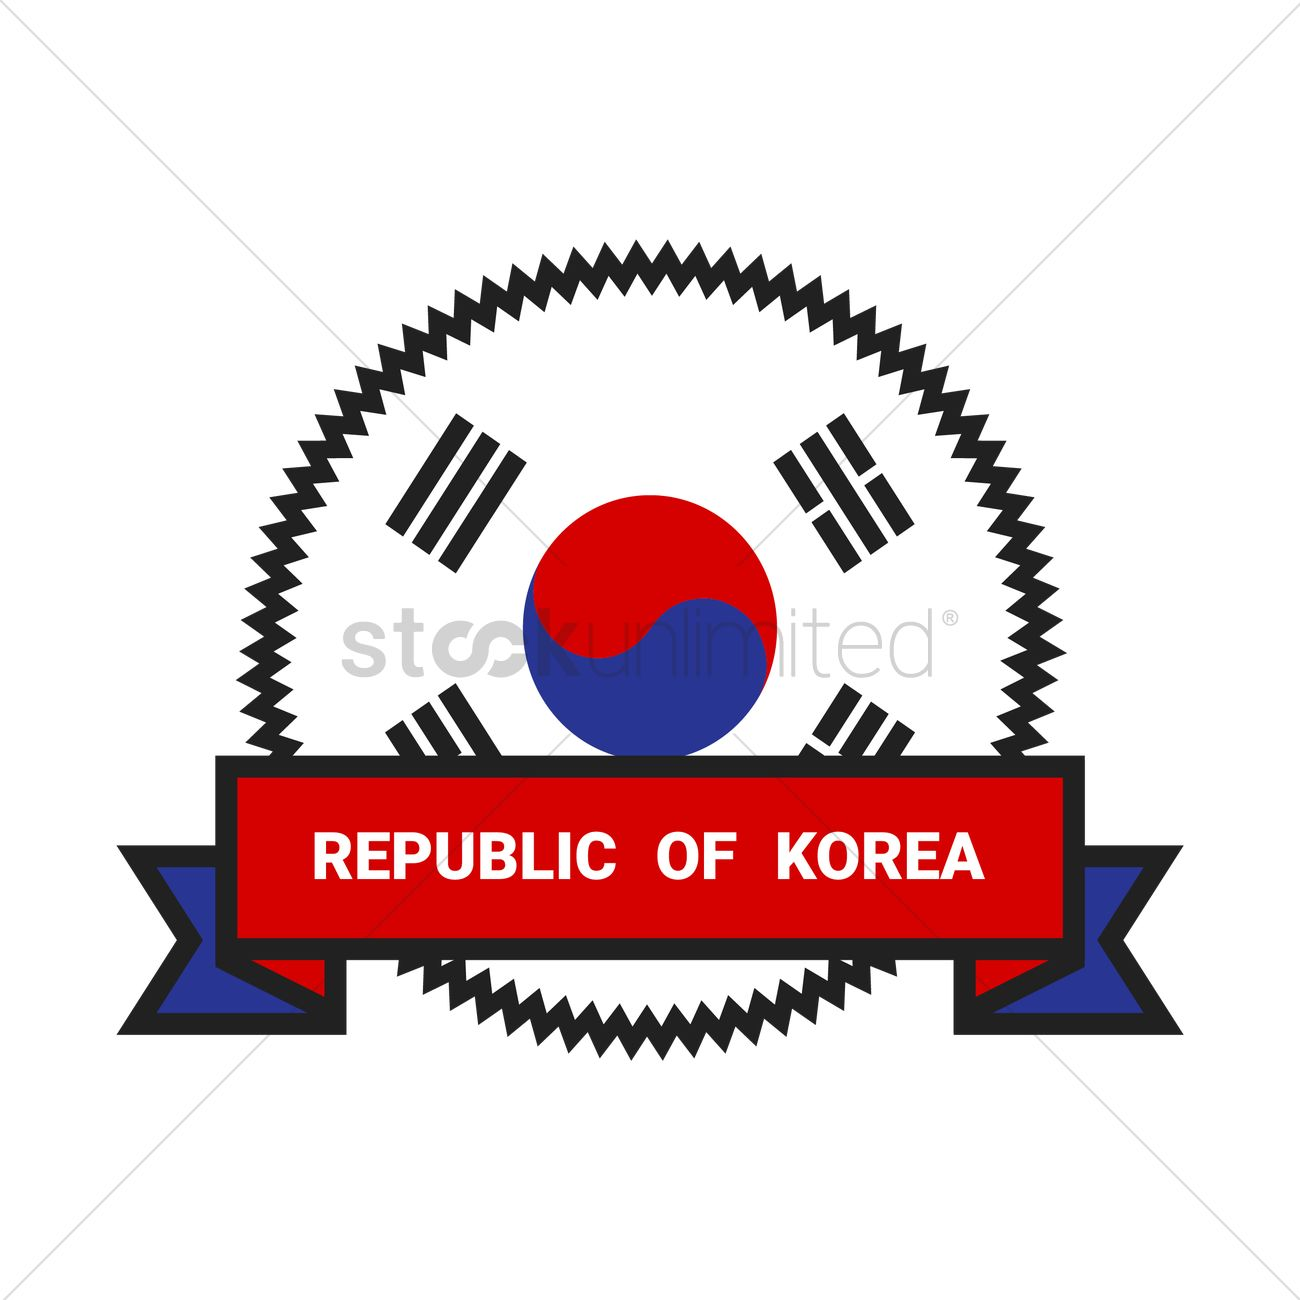 Republic of korea Vector Image.